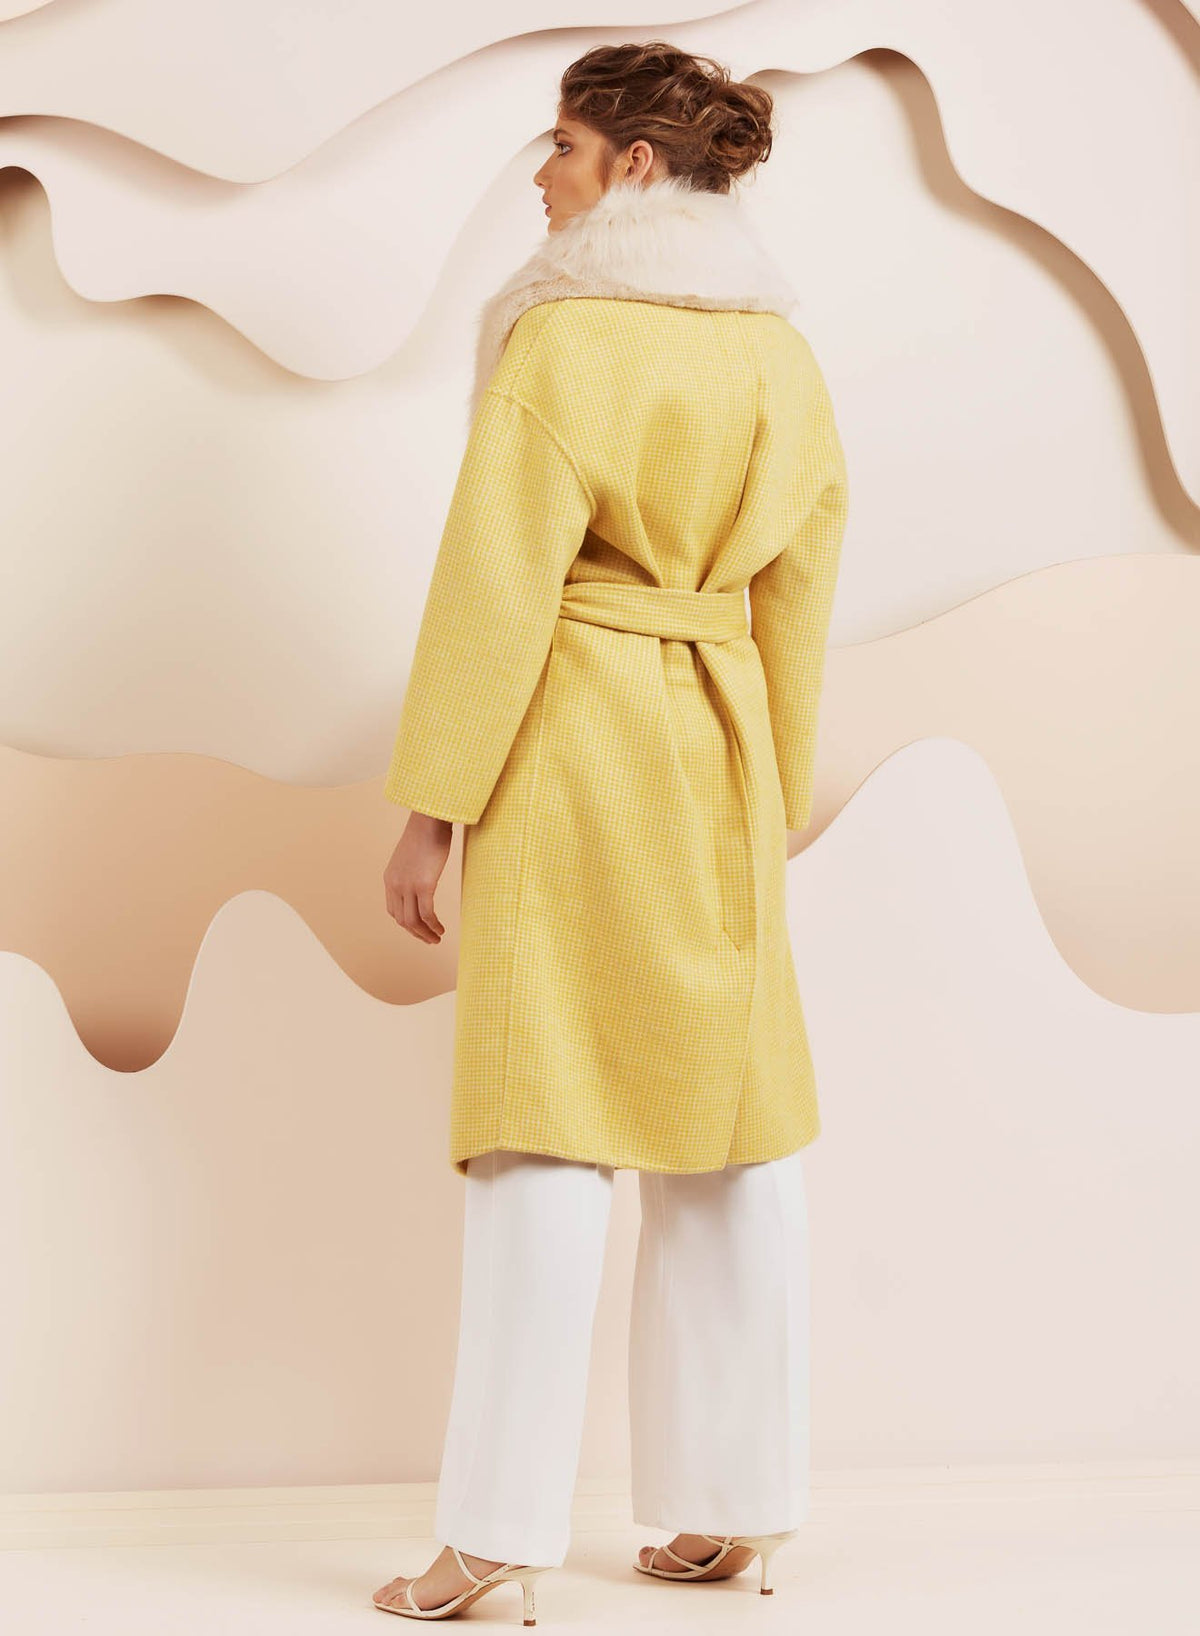 Bubish Luxe London Coat